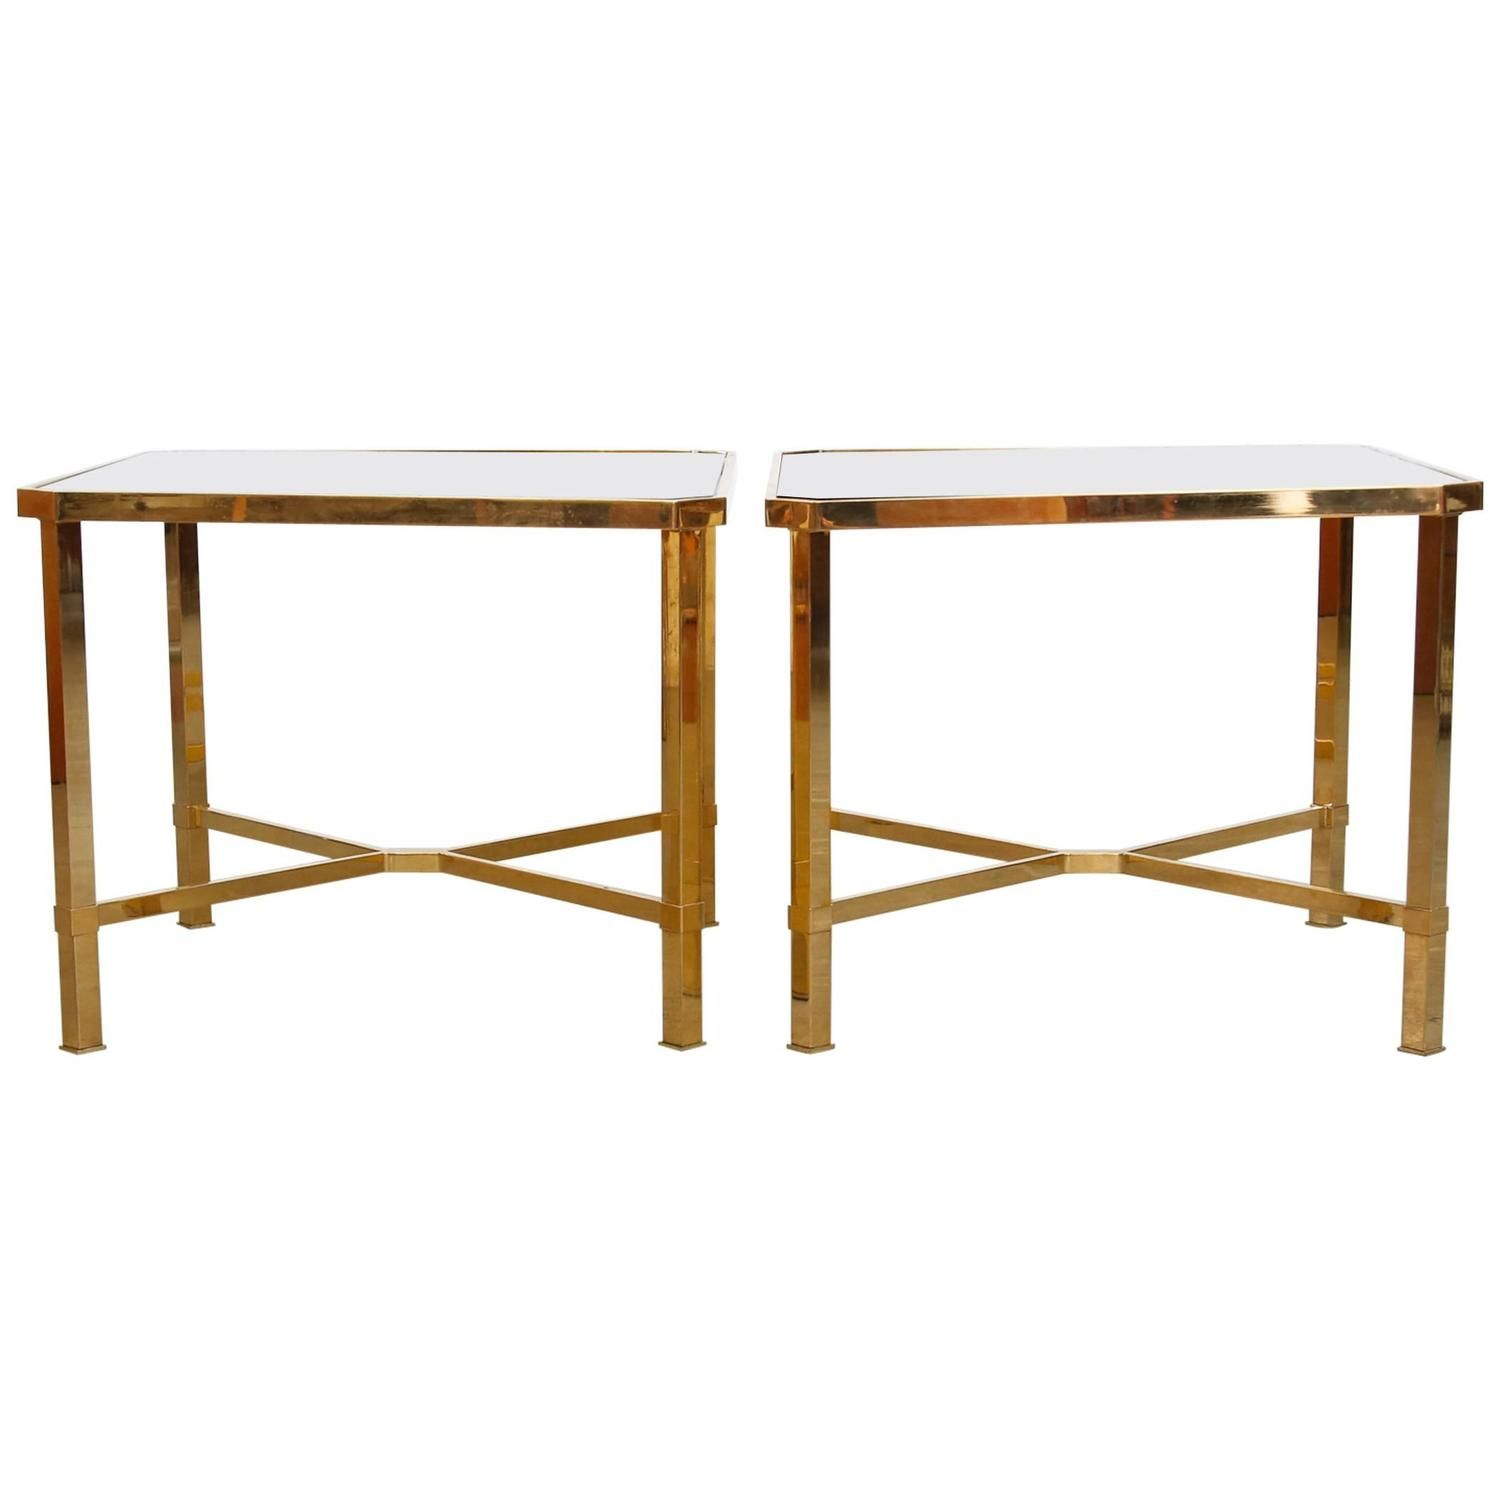 Pair of maison jansen style gold plated coffee tables